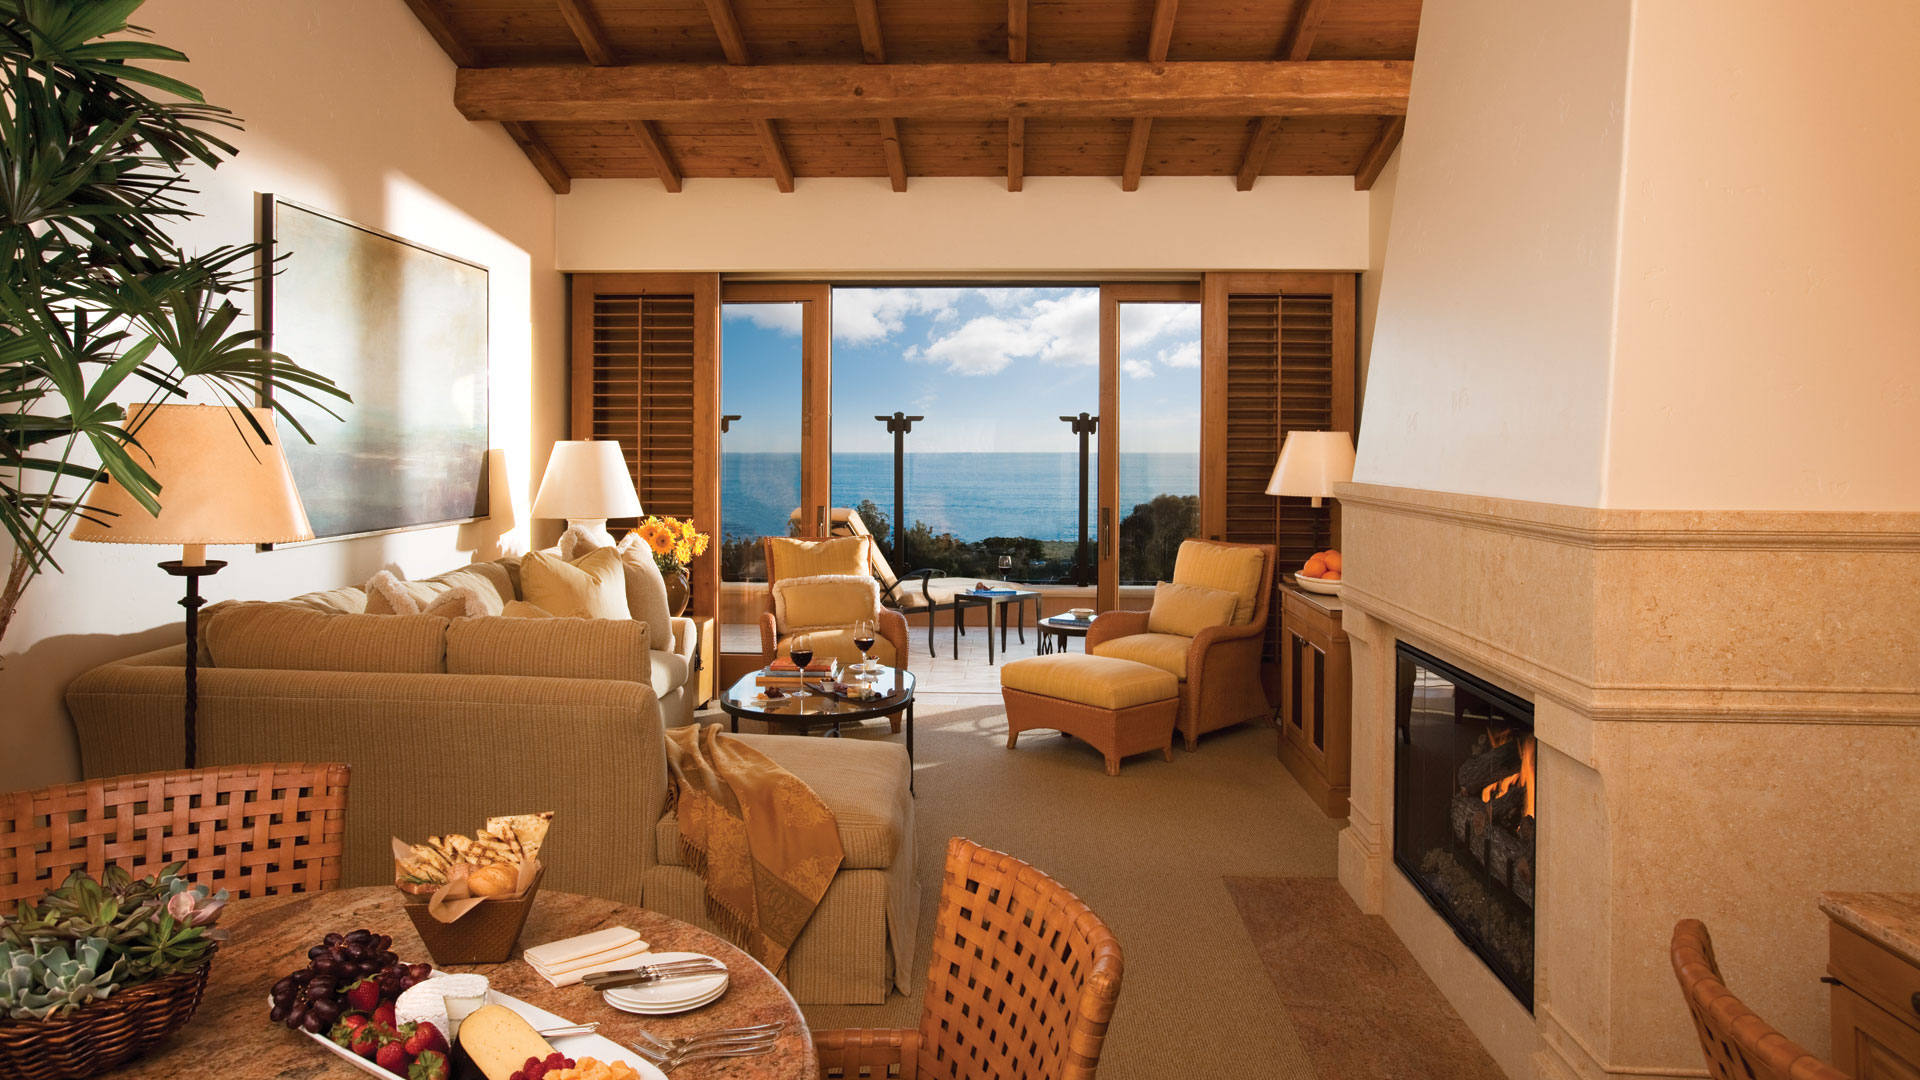 Wonderful Sea Views From This Three Bedroom Bungalow: The Resort At Pelican Hill Ocean View Suite In Newport